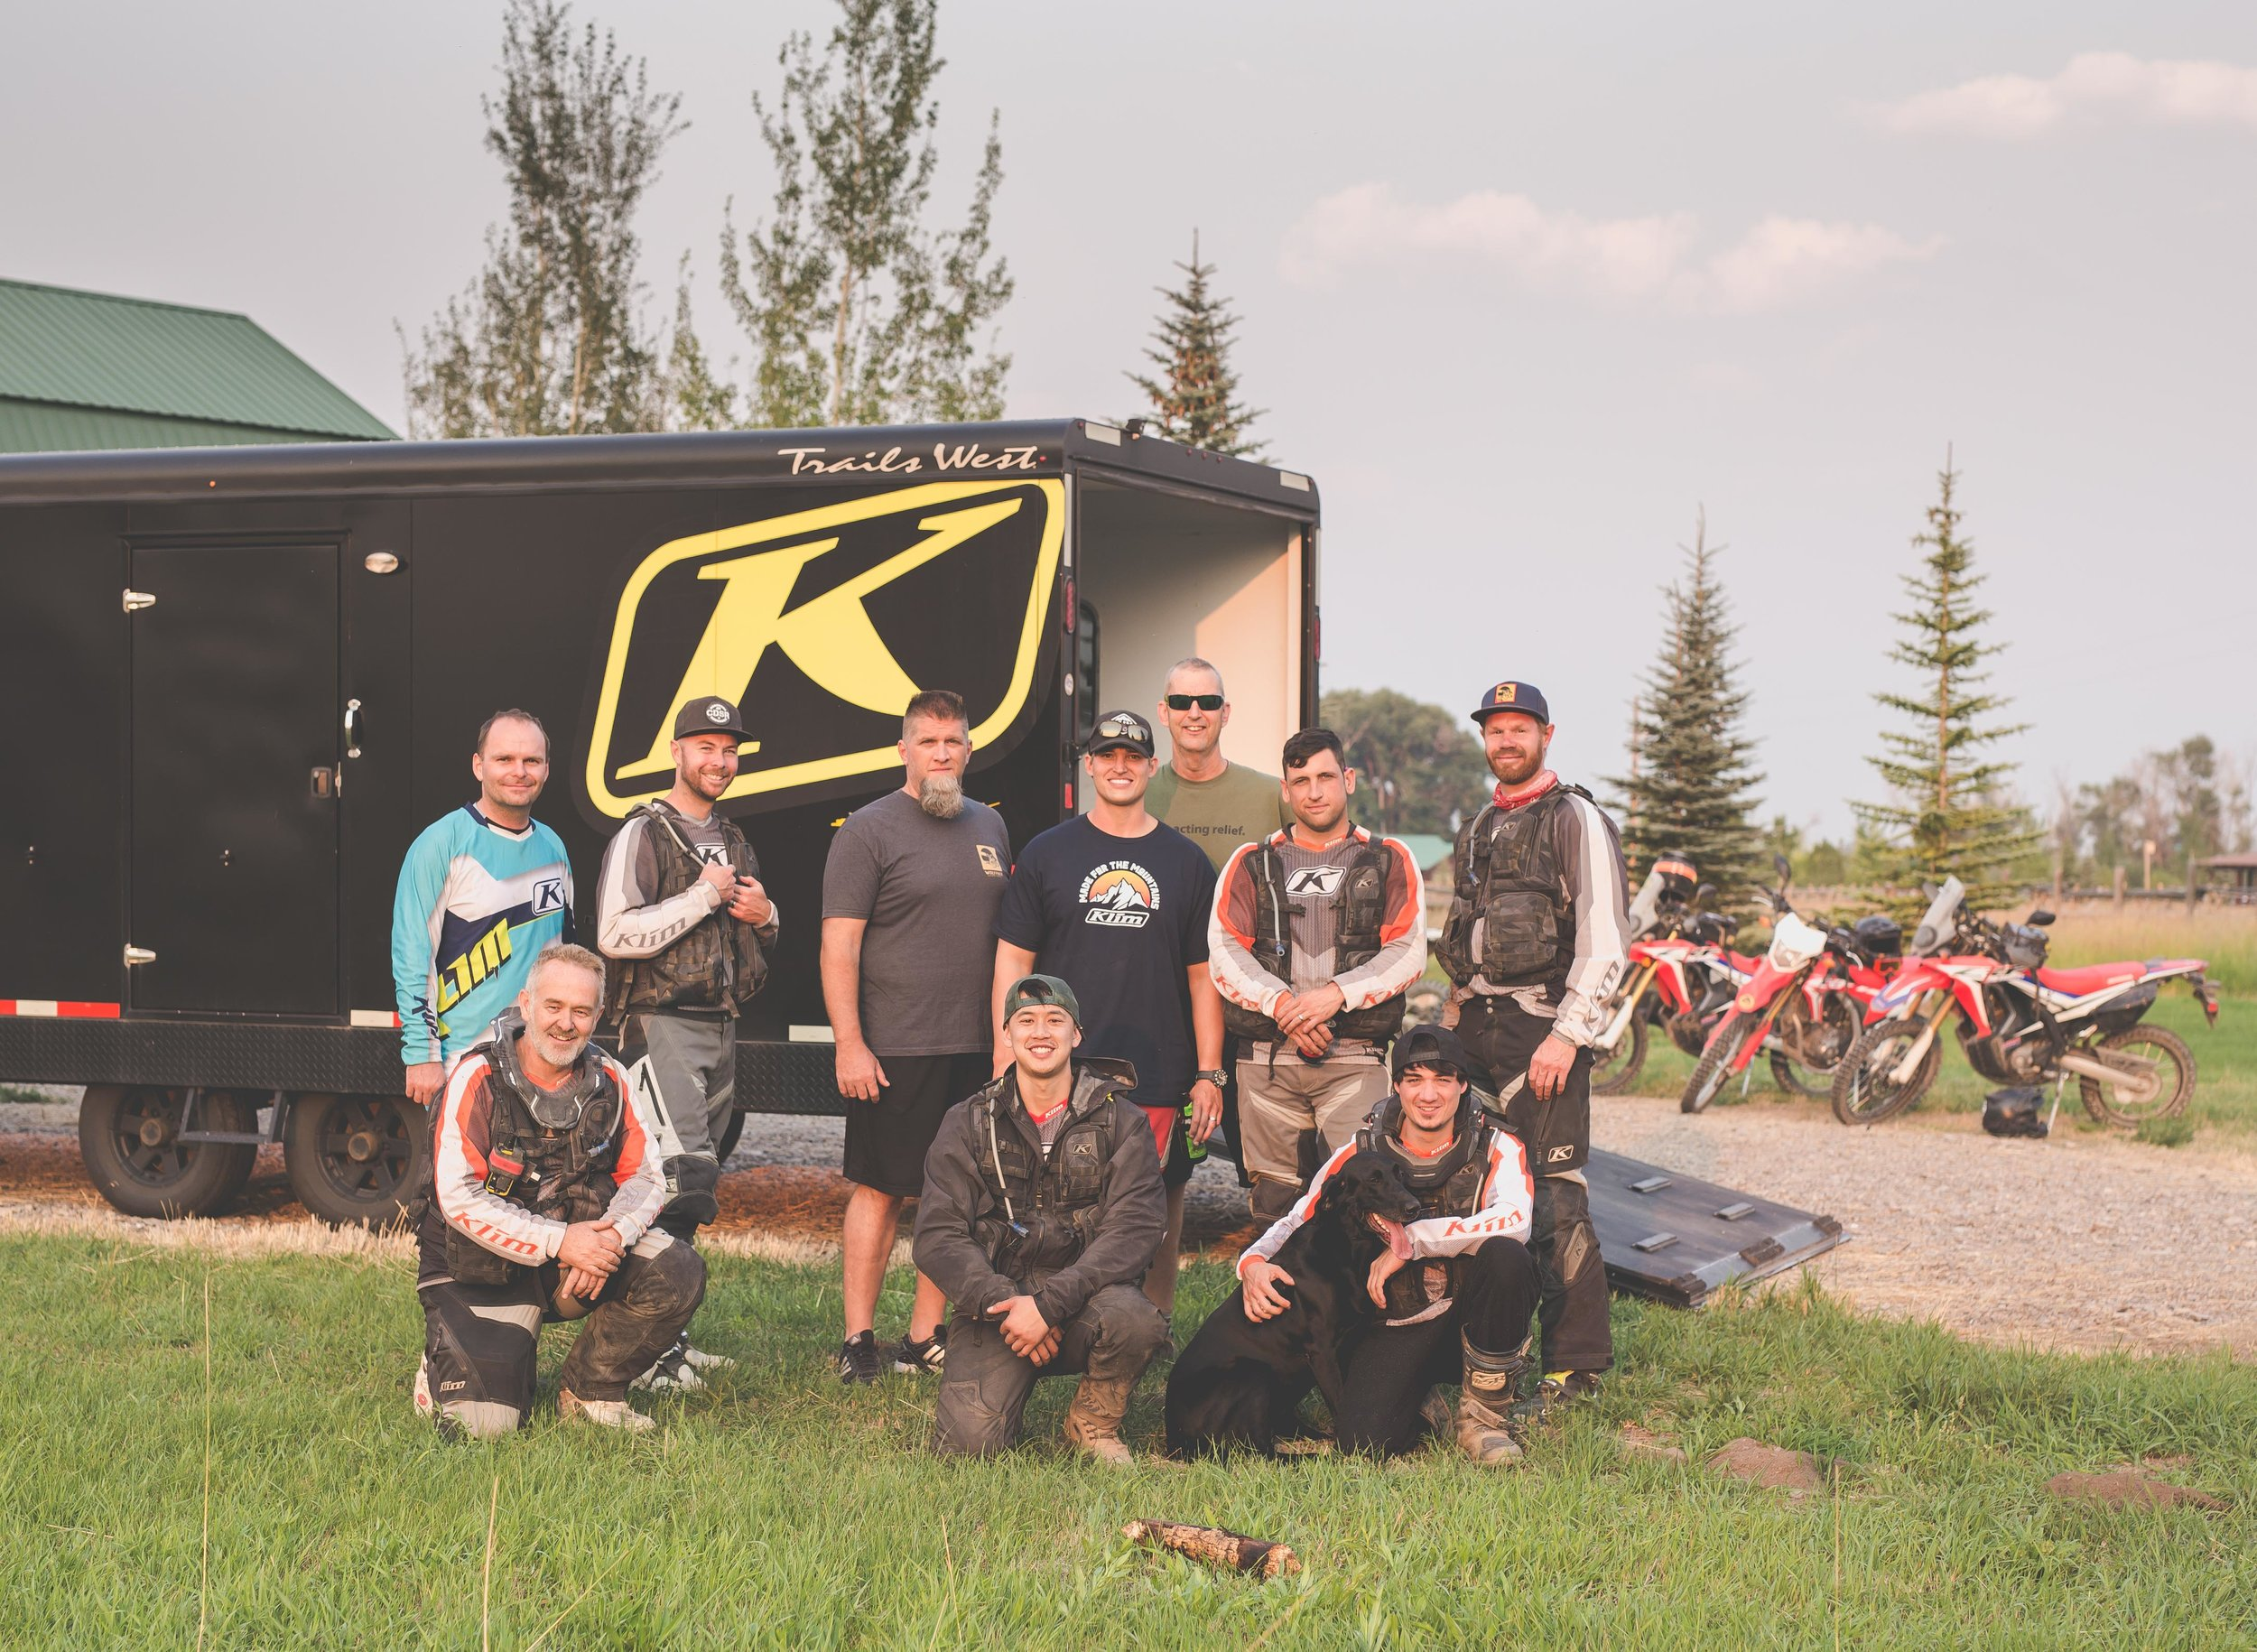 Group Photo with the council members of the  2017 KLiM Dual Sport Summit.   Top:   Stephen Clark   ,    Matt Negrete   ,    Richard Hughes   ,    Corey Lofton   ,    Mark Kincart   ,    Spencer Hill   ,    Nick Livingston   .   Bottom:   Simon Cudby   ,    Kin Creible   , Annabelle, Myself.   Photo by   Simon Cudby   of   Upshift Online   ,  edited by     Nick Livingston   .